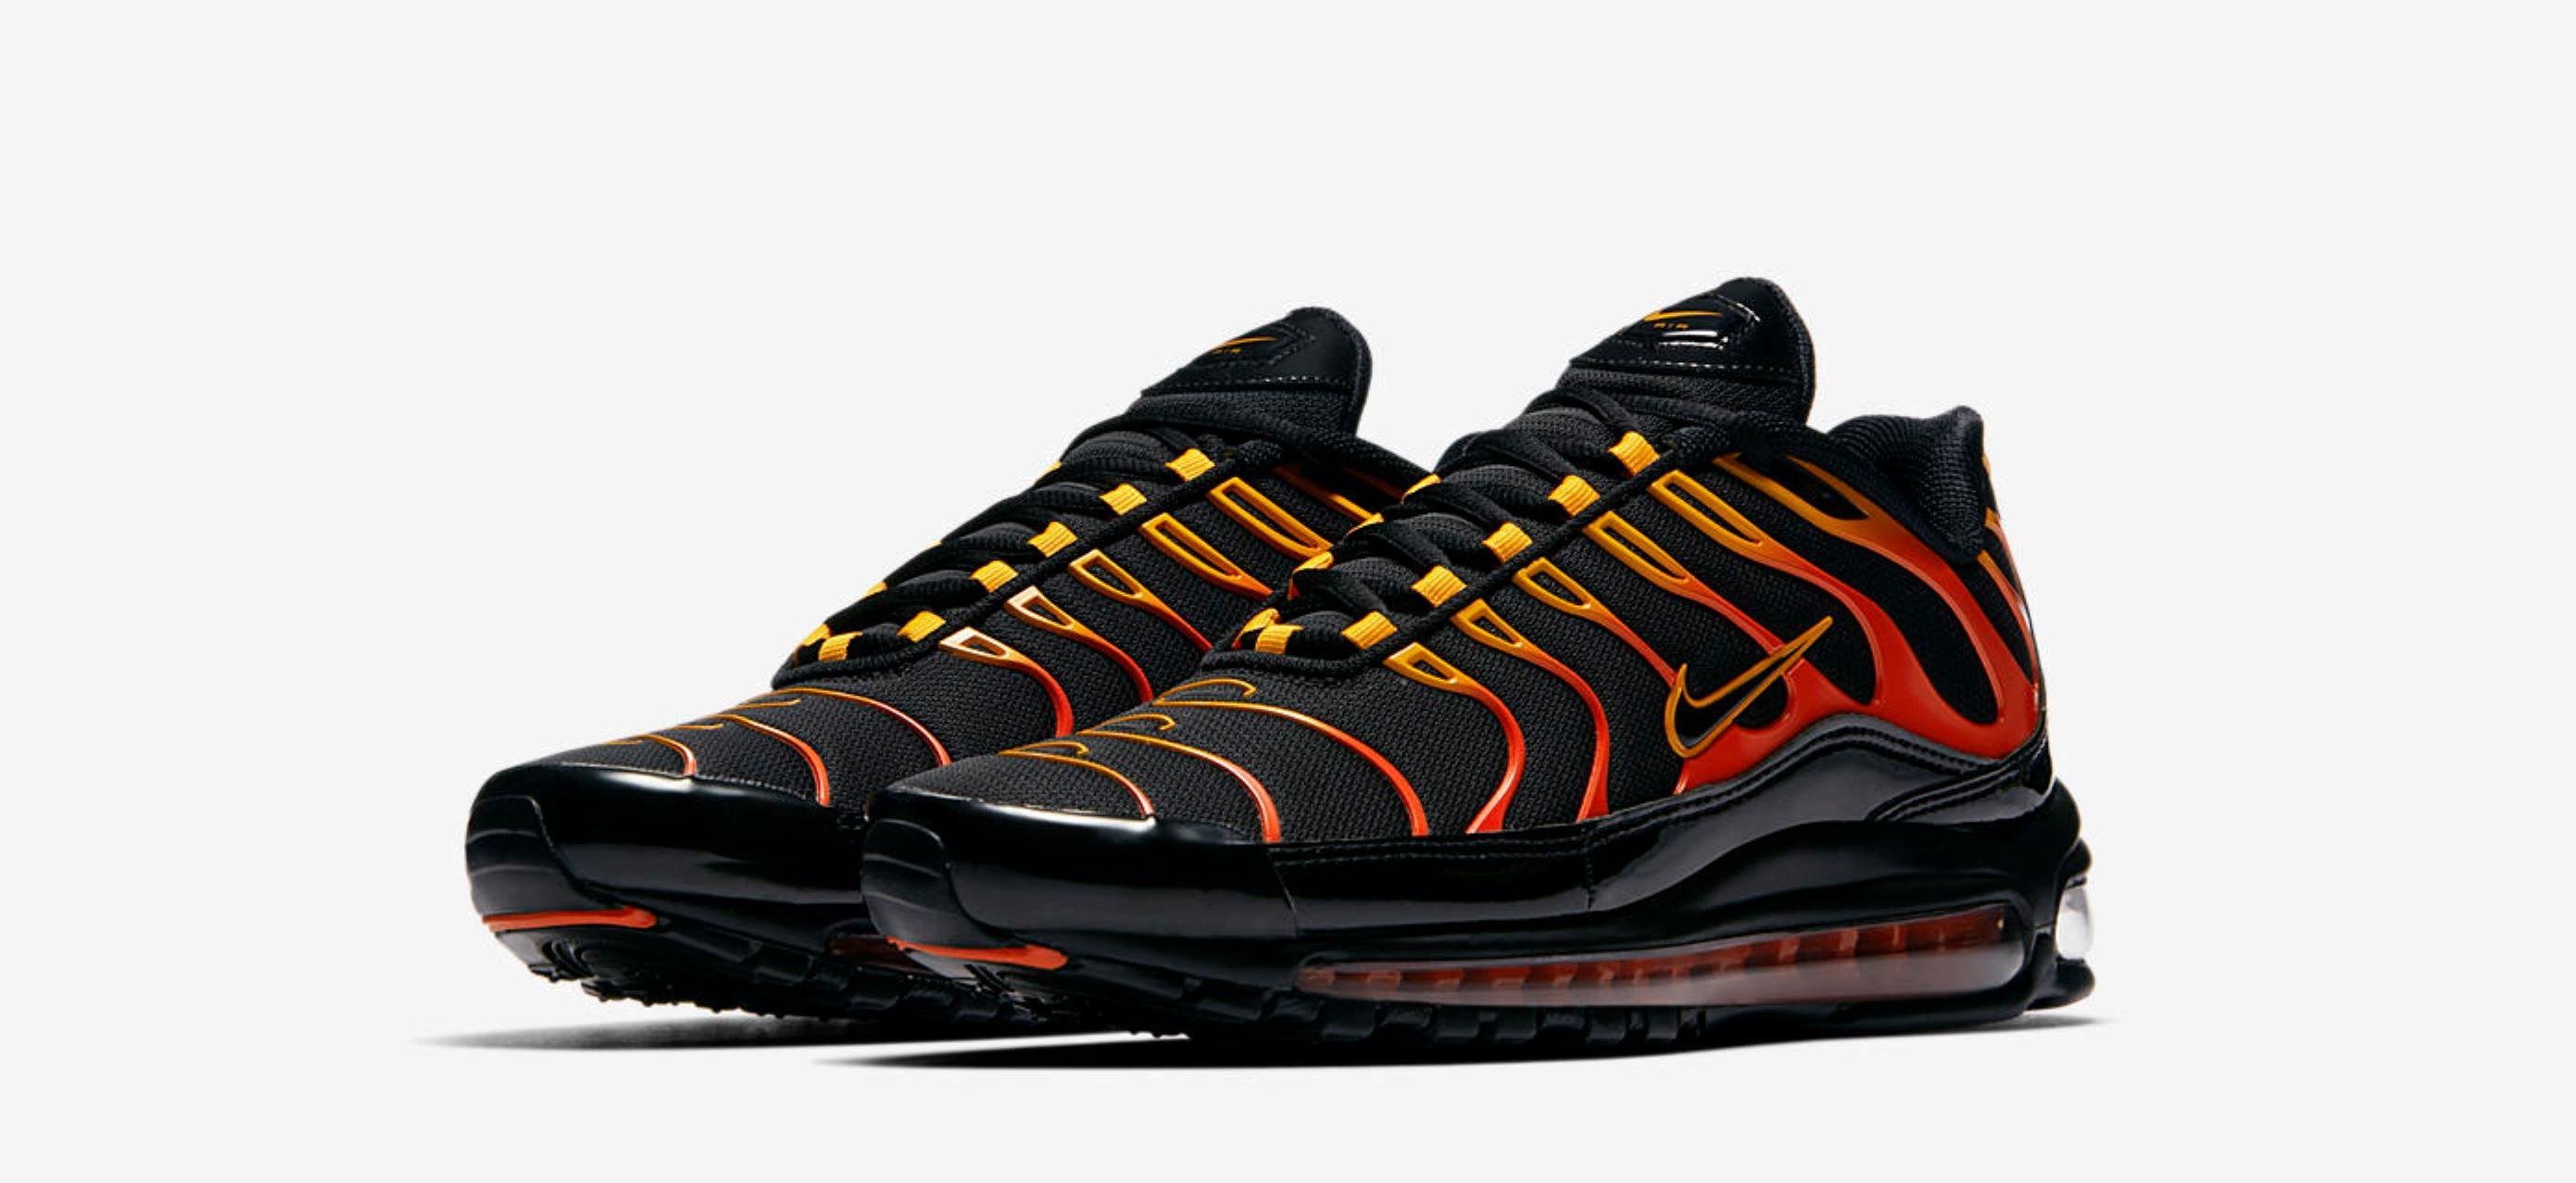 online store fab98 707ce Flame On with the Nike Air Max Plus 97 'Shock Orange ...